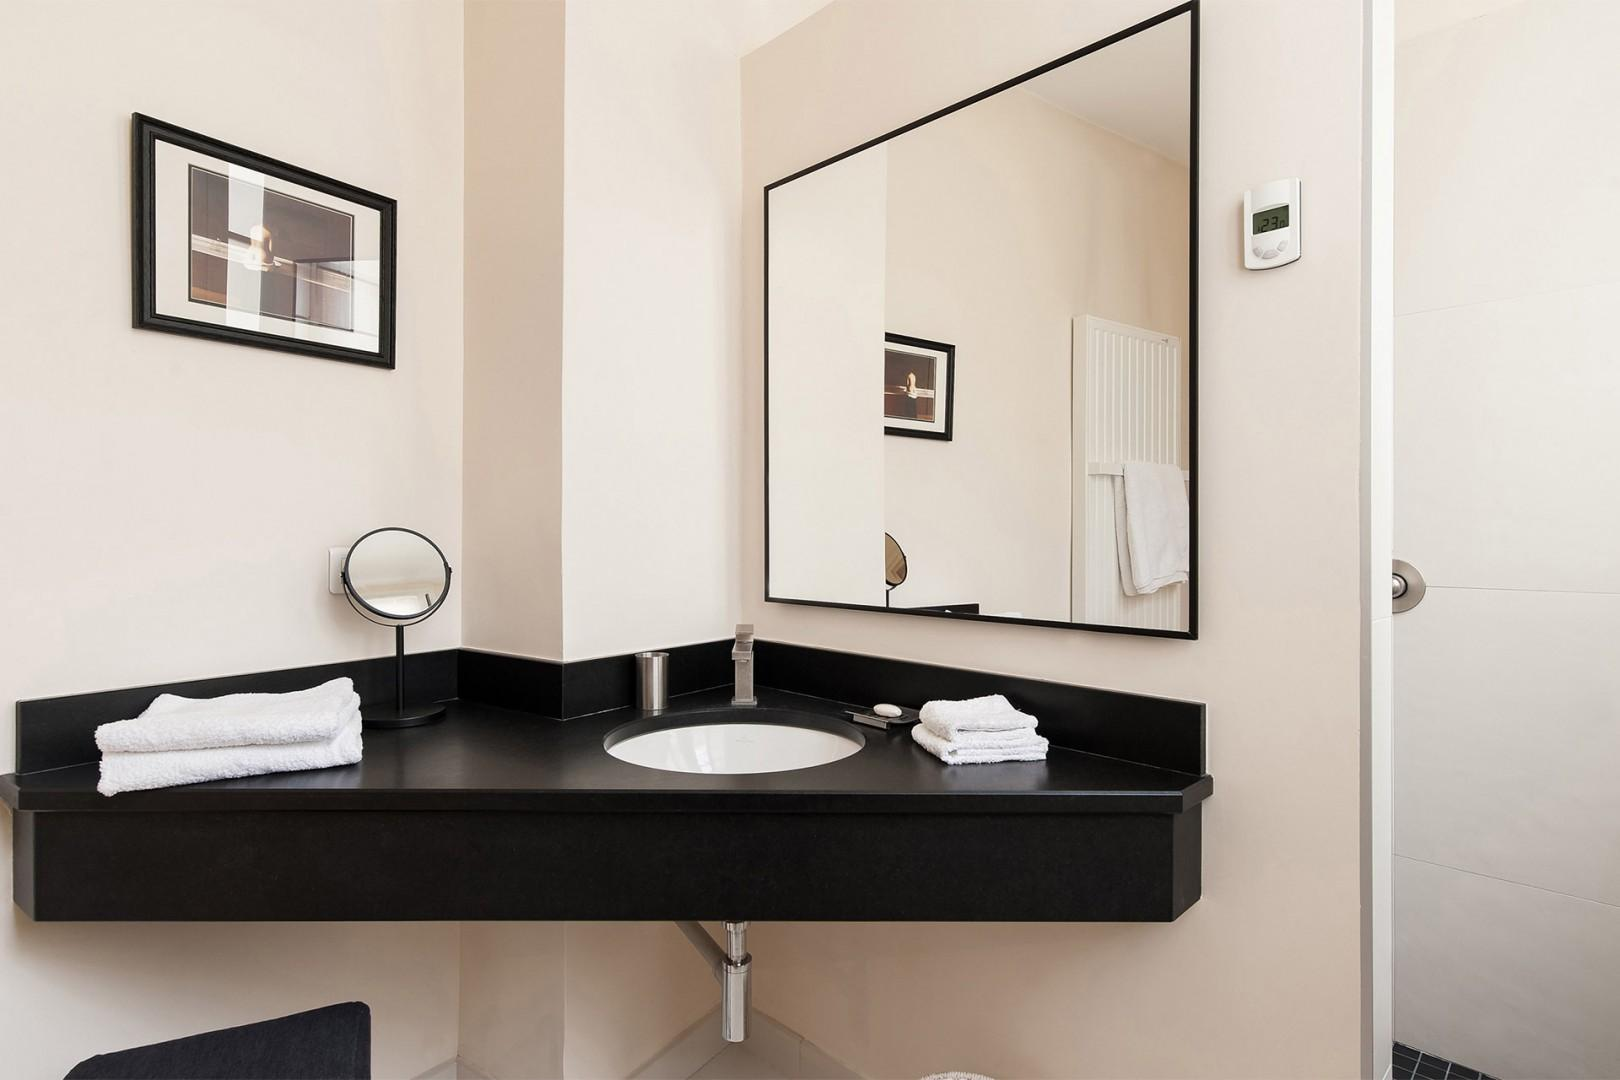 Enjoy the high-end finishes in the bathroom.